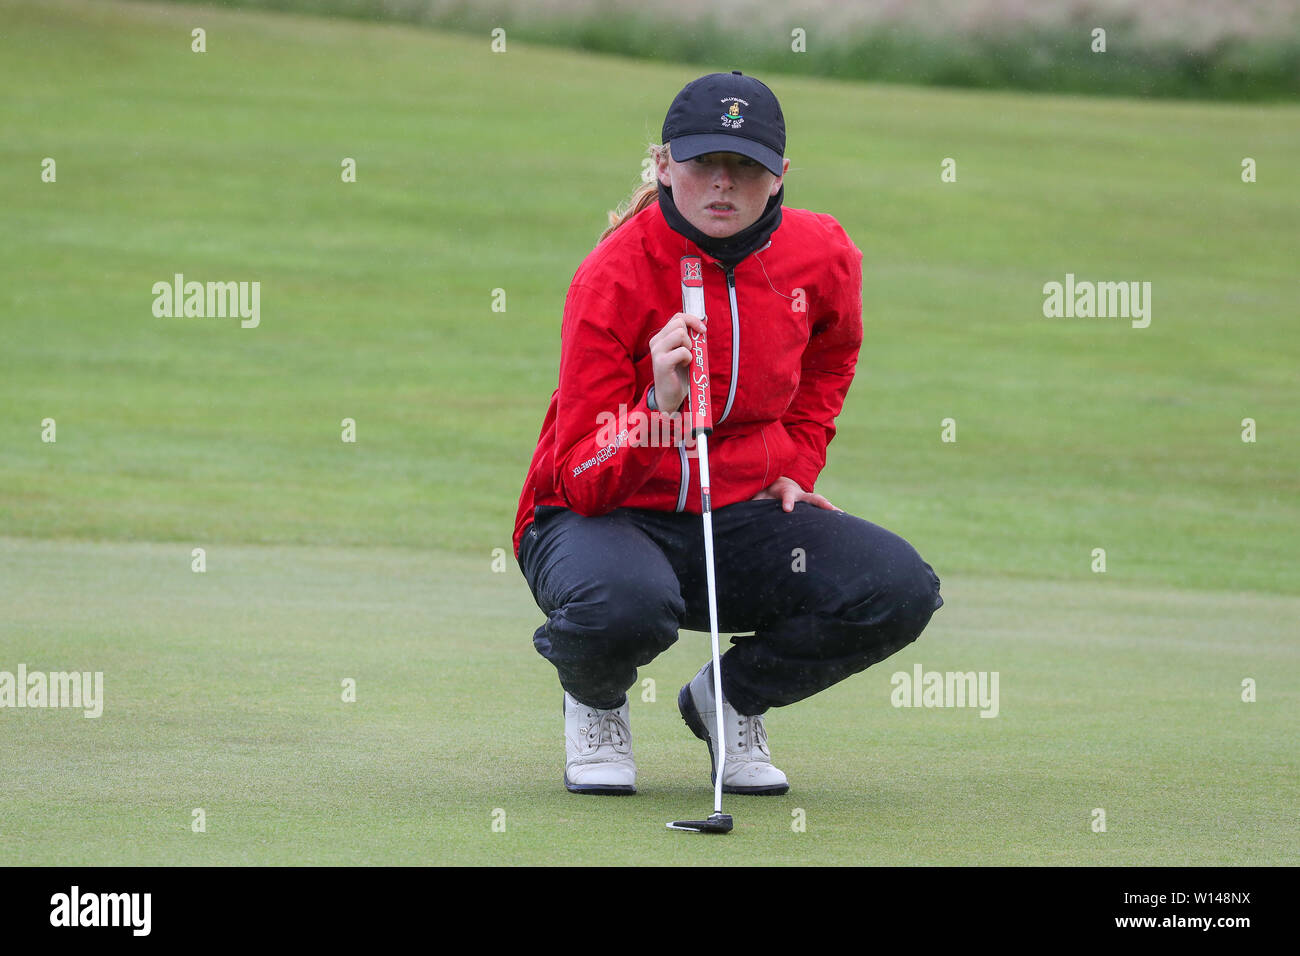 Troon, Scotland, UK. 30th June 2019. On the final day of the Competition the remaining 8 golfers, playing matchplay golf competed over Barassie Links Golf course, Troon in blustery wind and squally rain conditions to try and win the Championship Cup and the Clark Rosebowl. Credit: Findlay/Alamy Live News - Stock Image